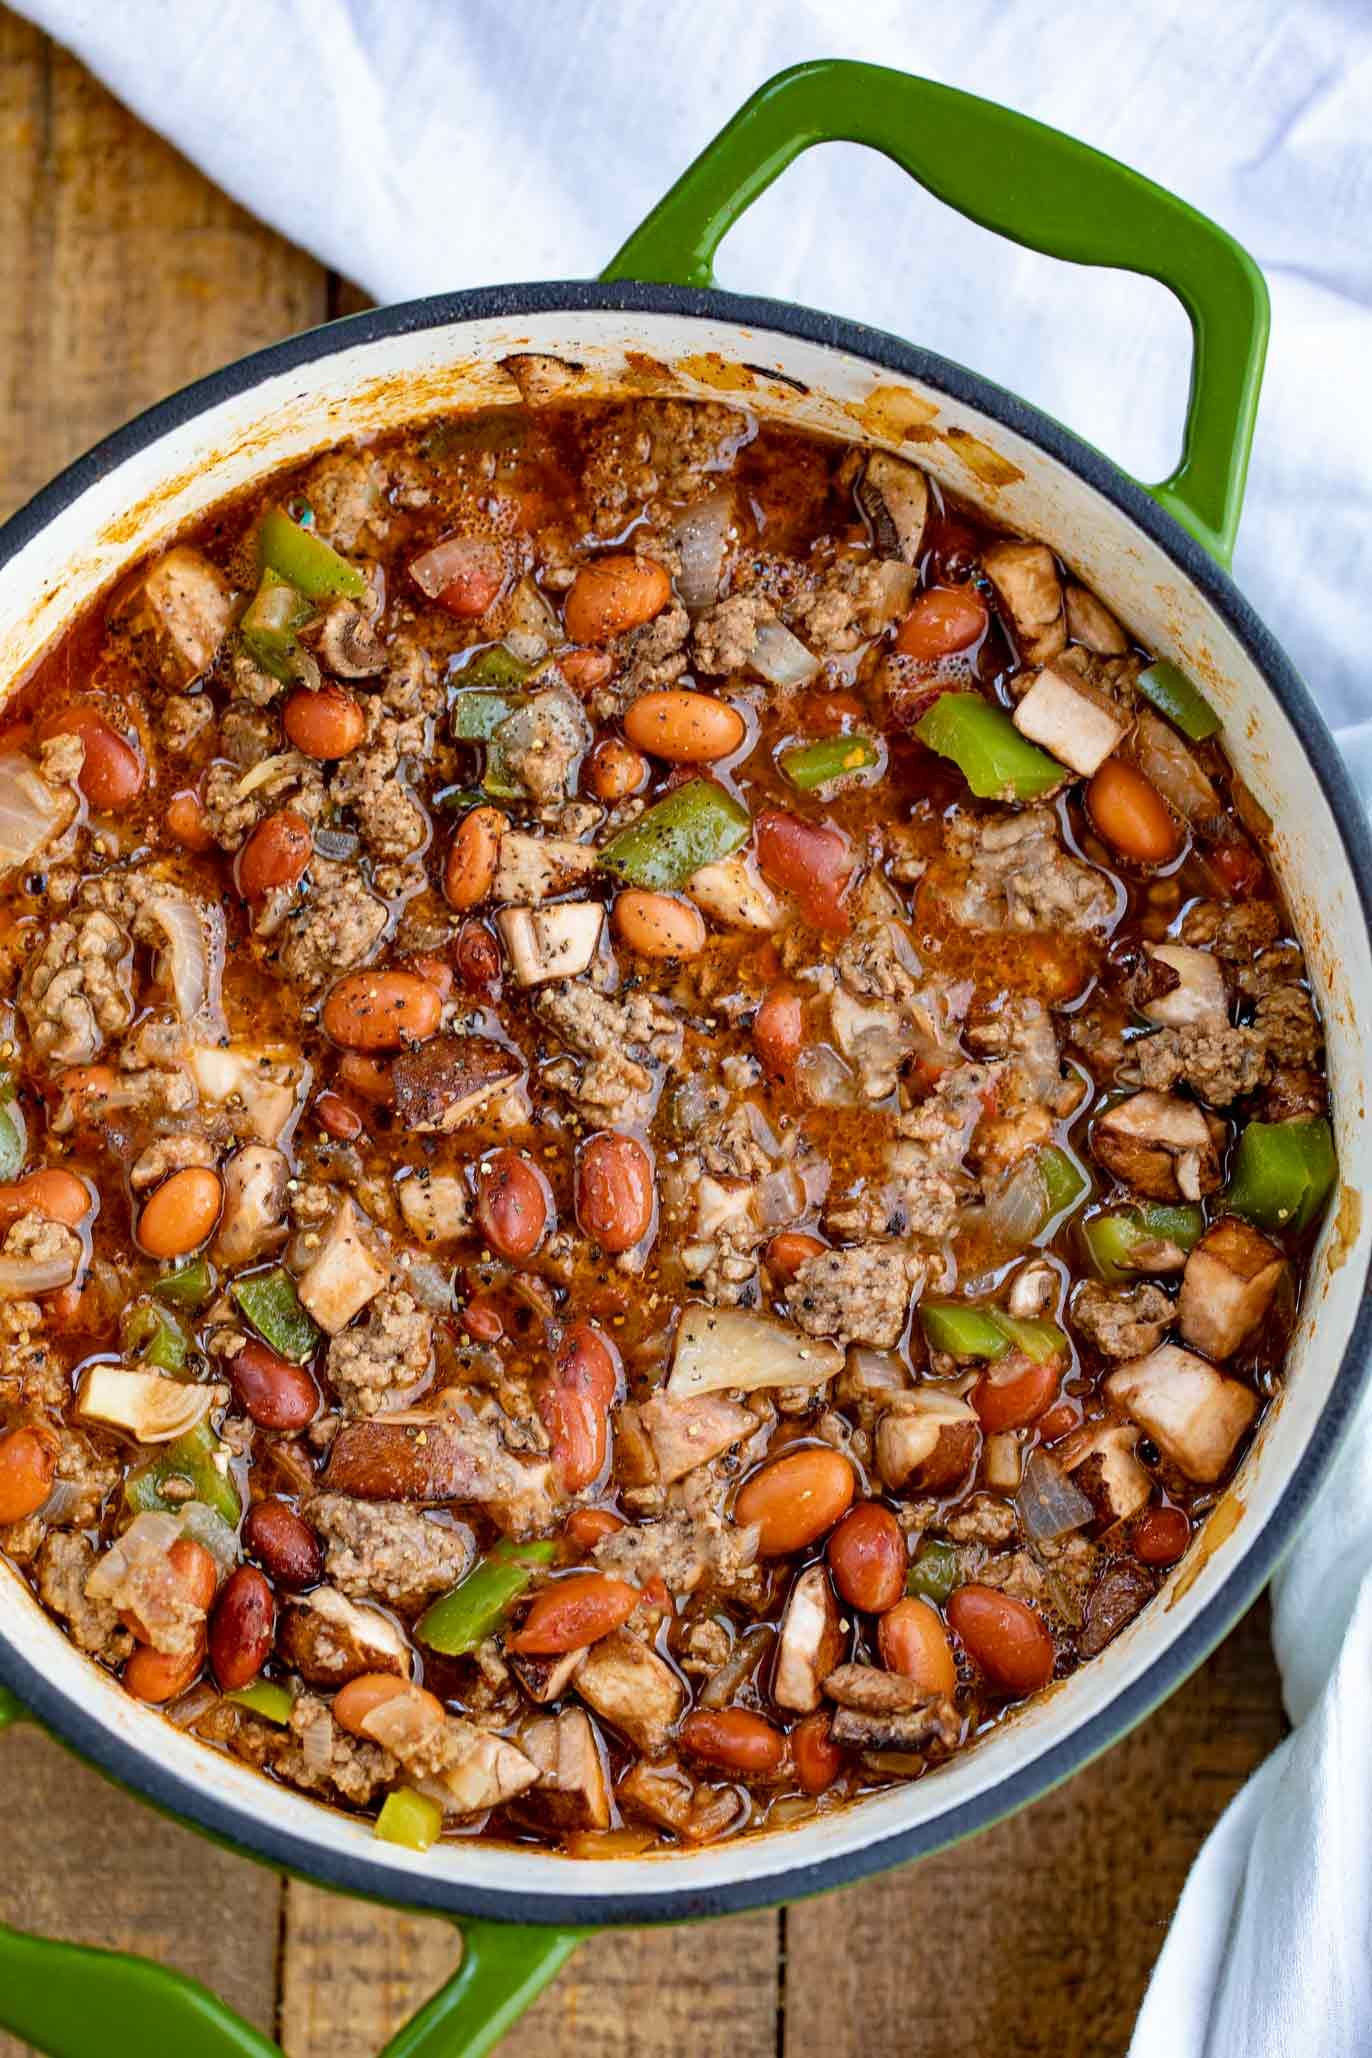 Chili With Steak And Ground Beef  Philly Cheesesteak Chili made with butter seared ground